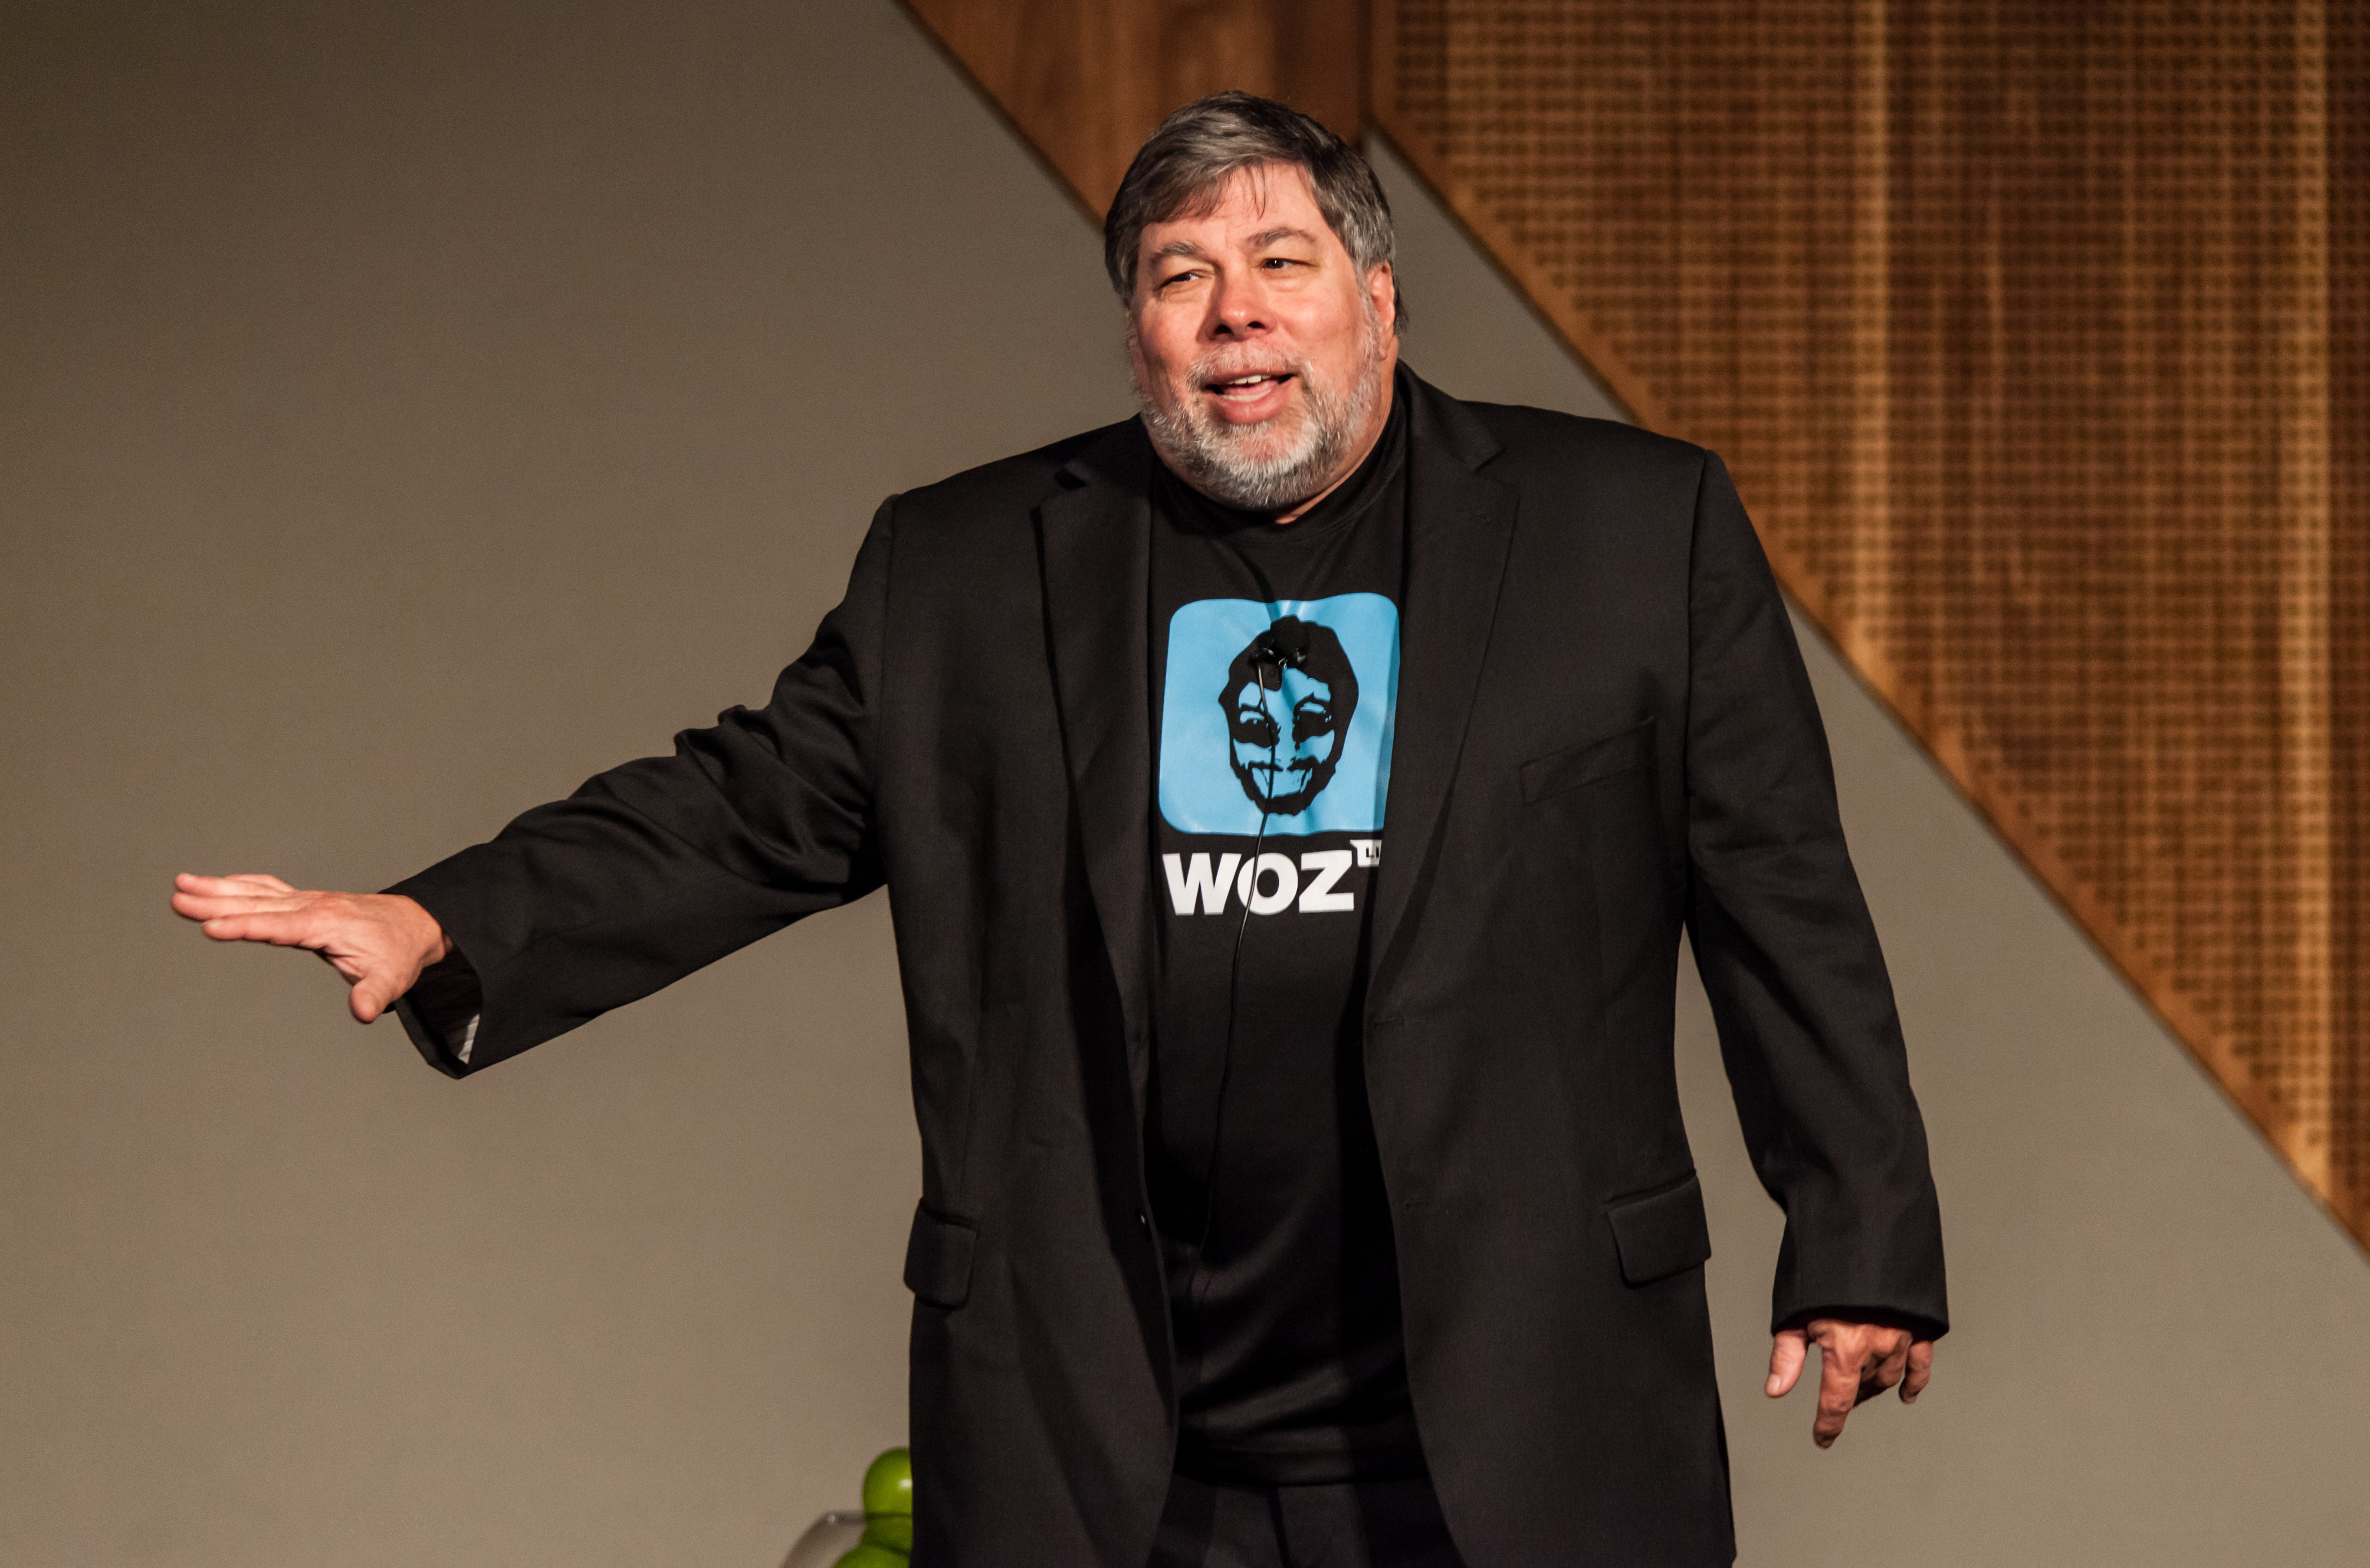 Apple co-founder Steve Wozniak brings Comic Con to Silicon Valley